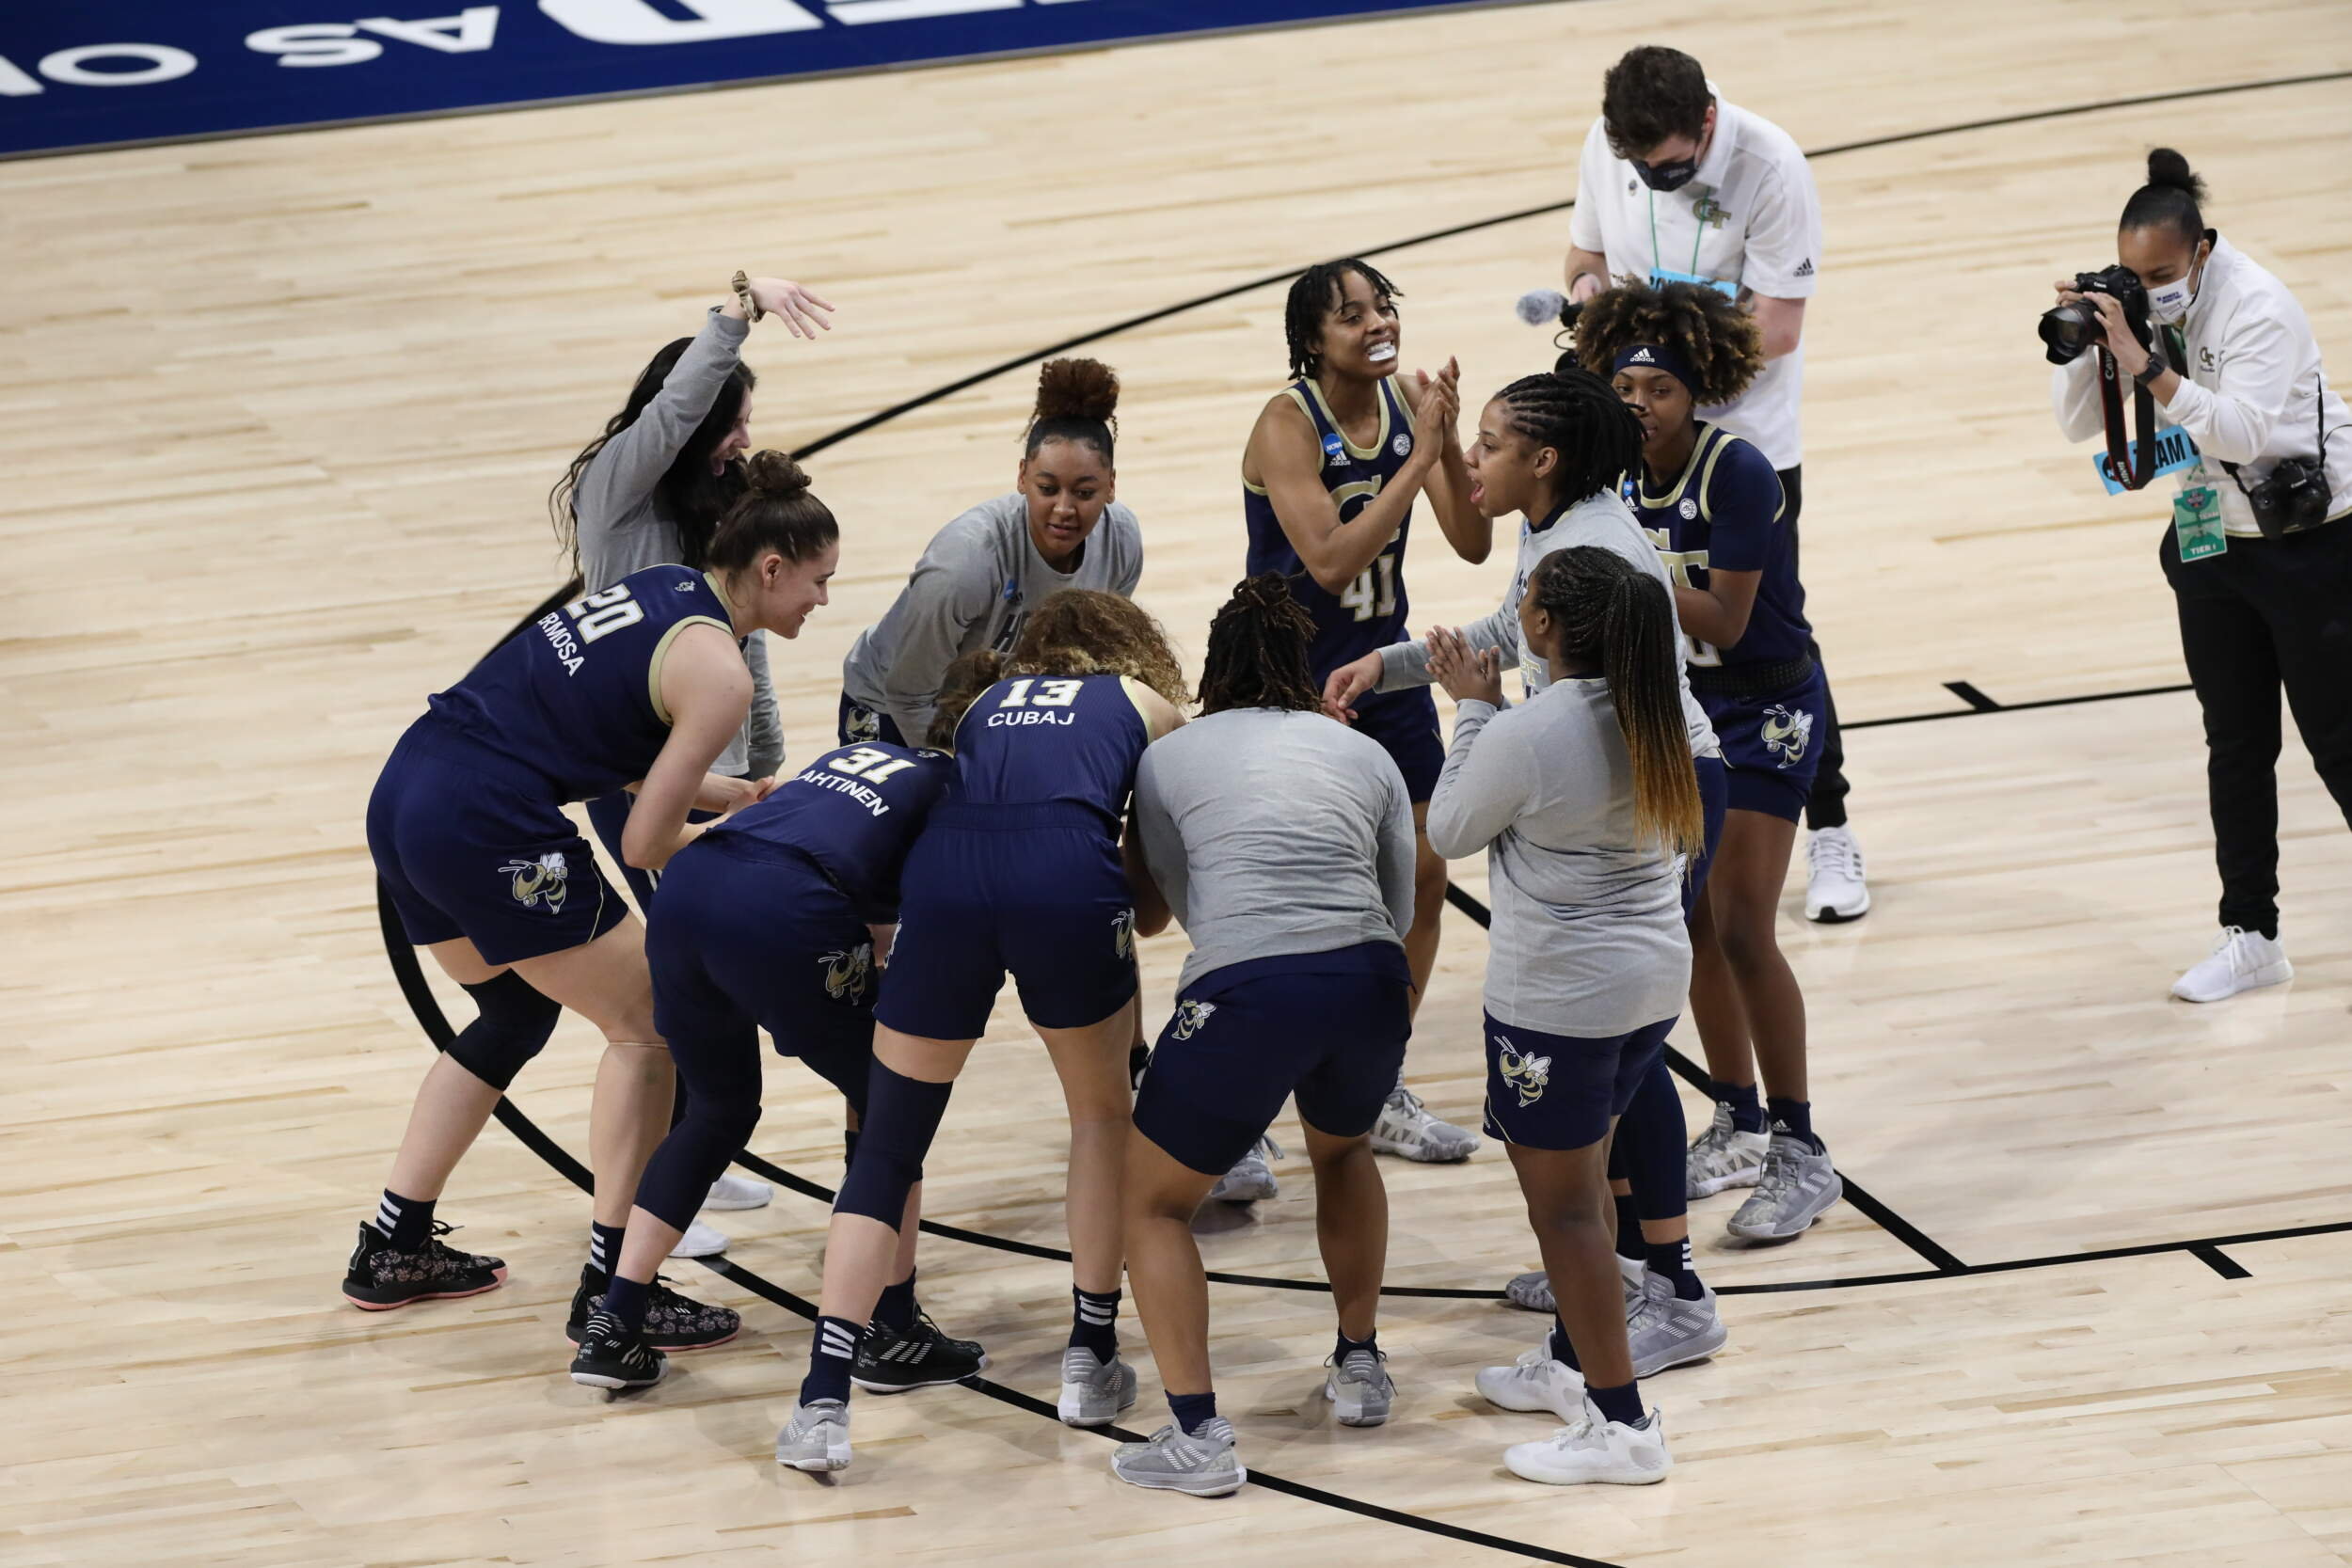 Women's Basketball Ranked No. 22 in Coaches Poll